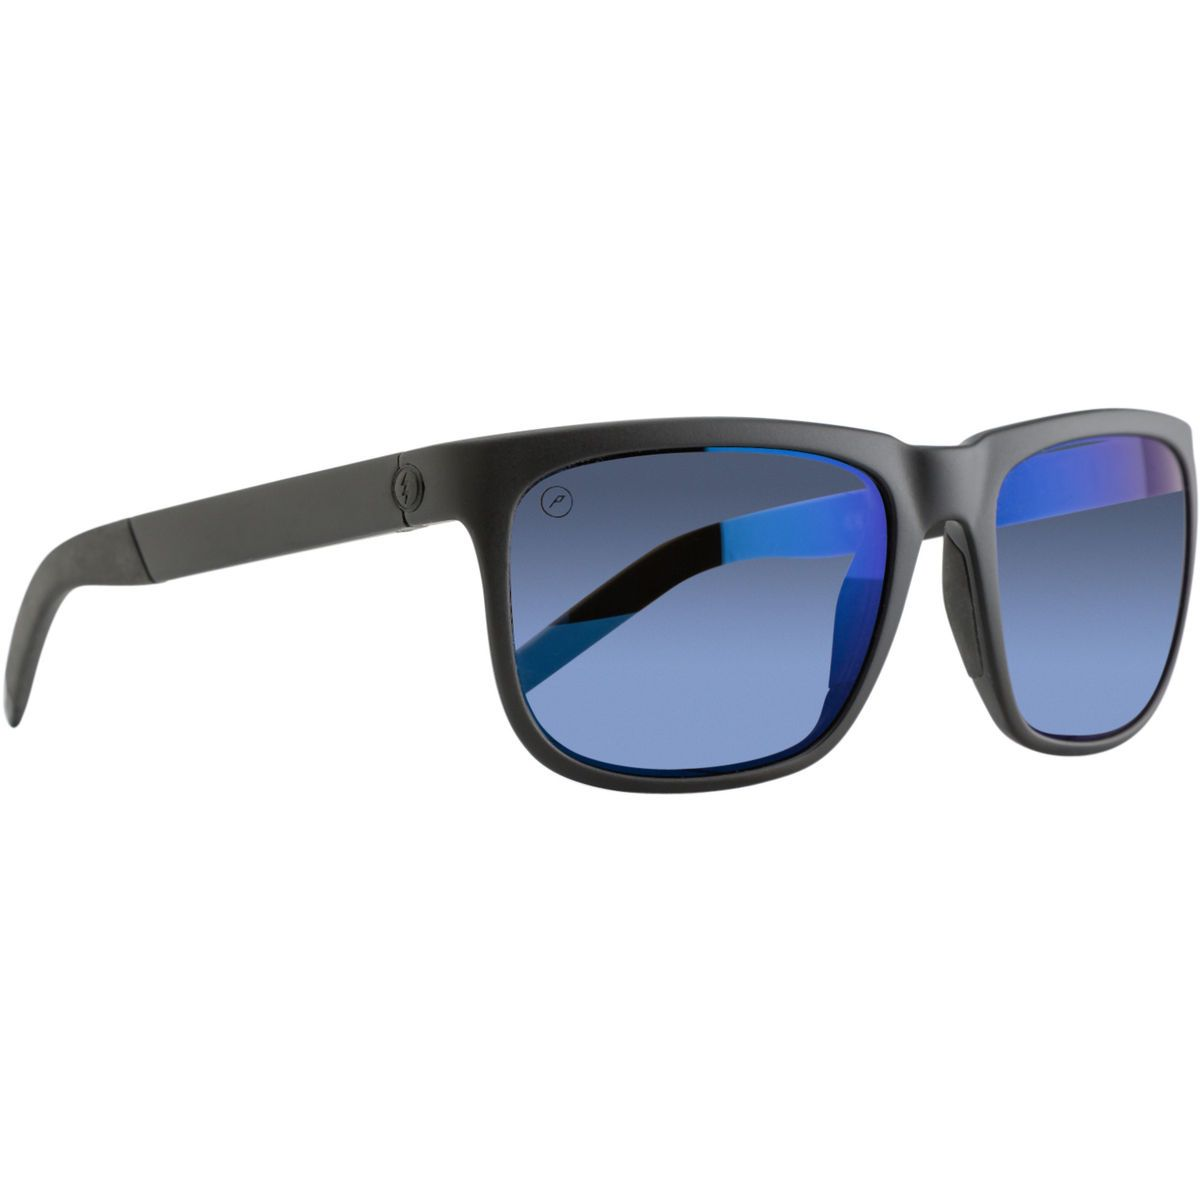 2534abaf2d7a6 ELECTRIC KNOXVILLE S POLARIZED OHM+ SUNGLASSES